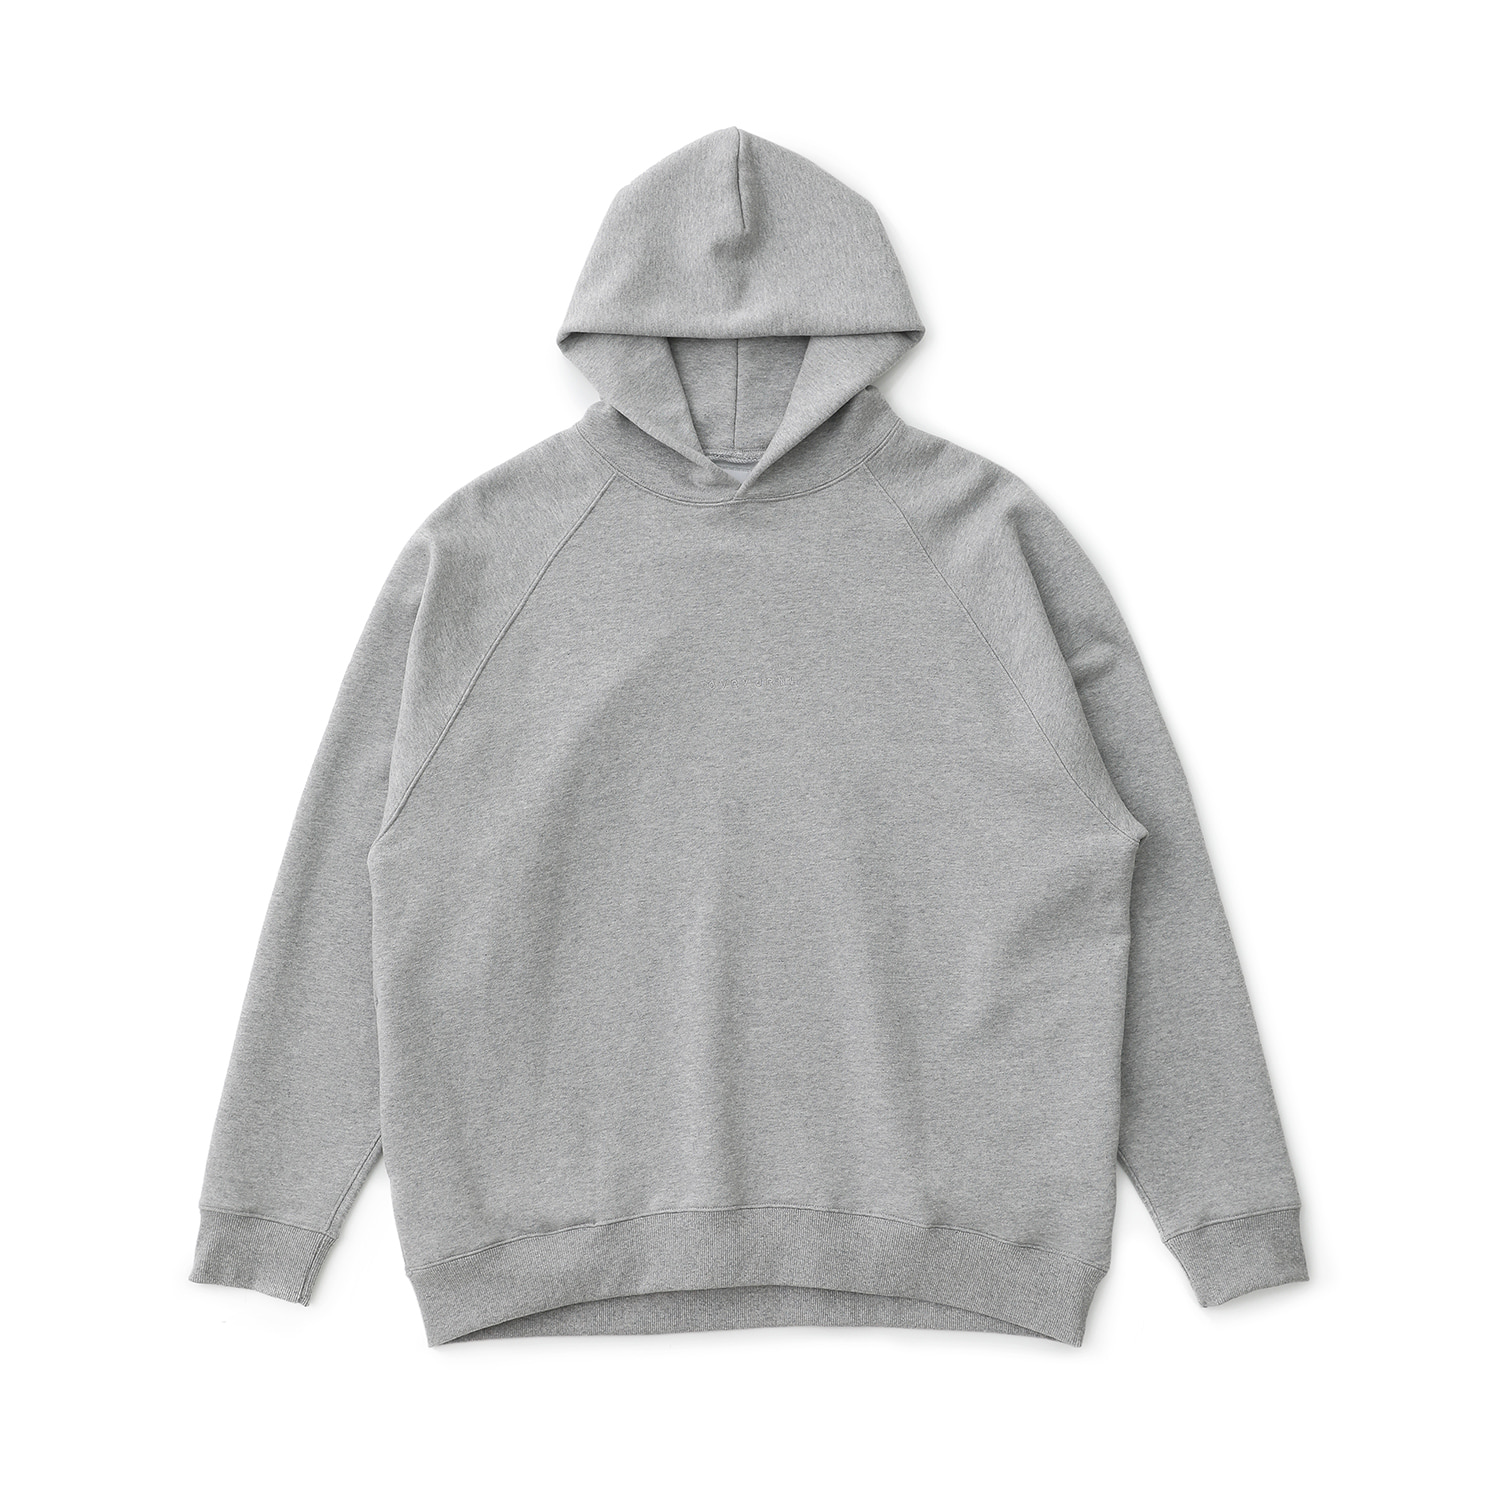 Broad Hoodie Pullover (Heather Gray)